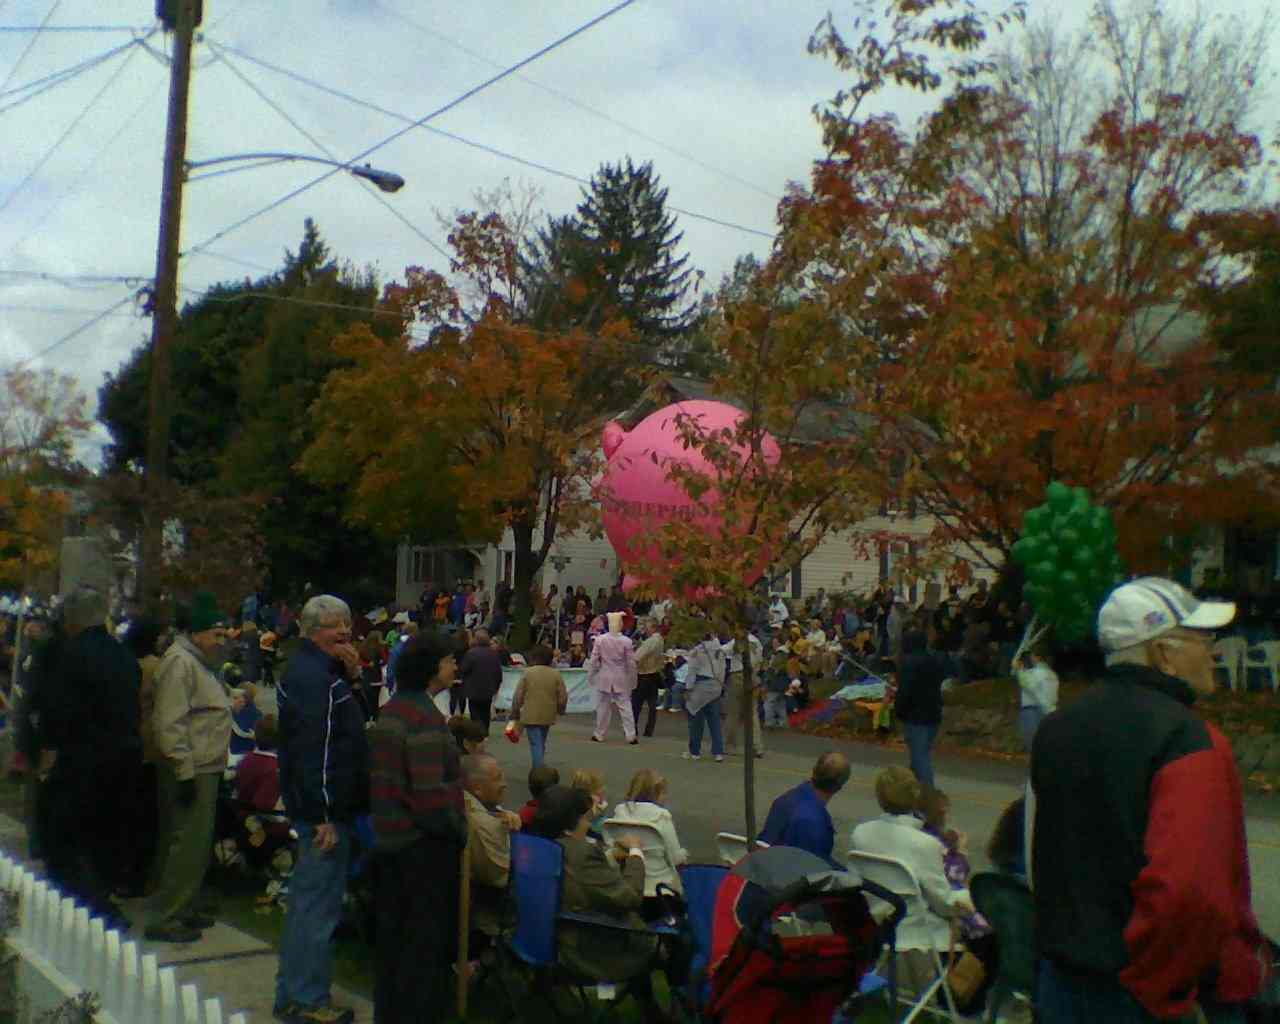 OK, so it wasn't the Macy's parade, but the 50th annual Ft. Ligonier Days parade was a real slice of America.